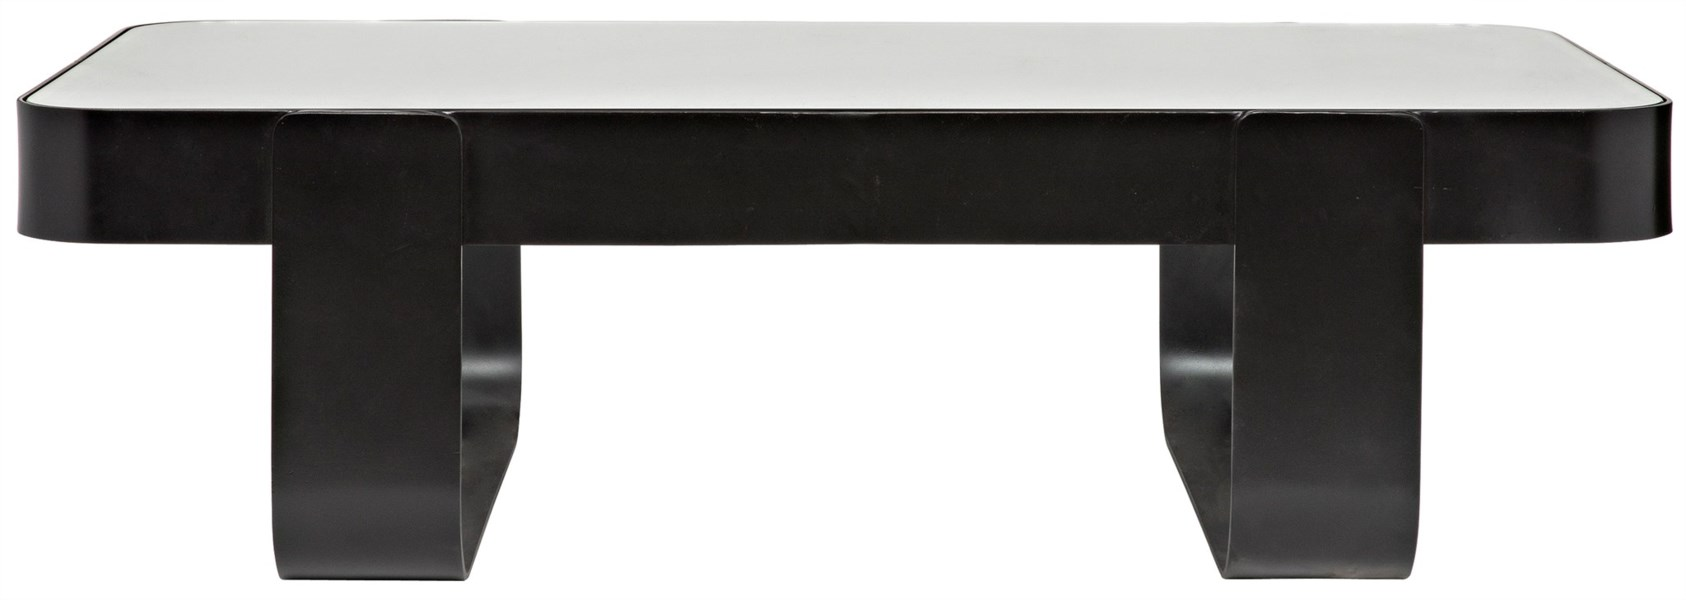 Marshall Coffee Table, Metal